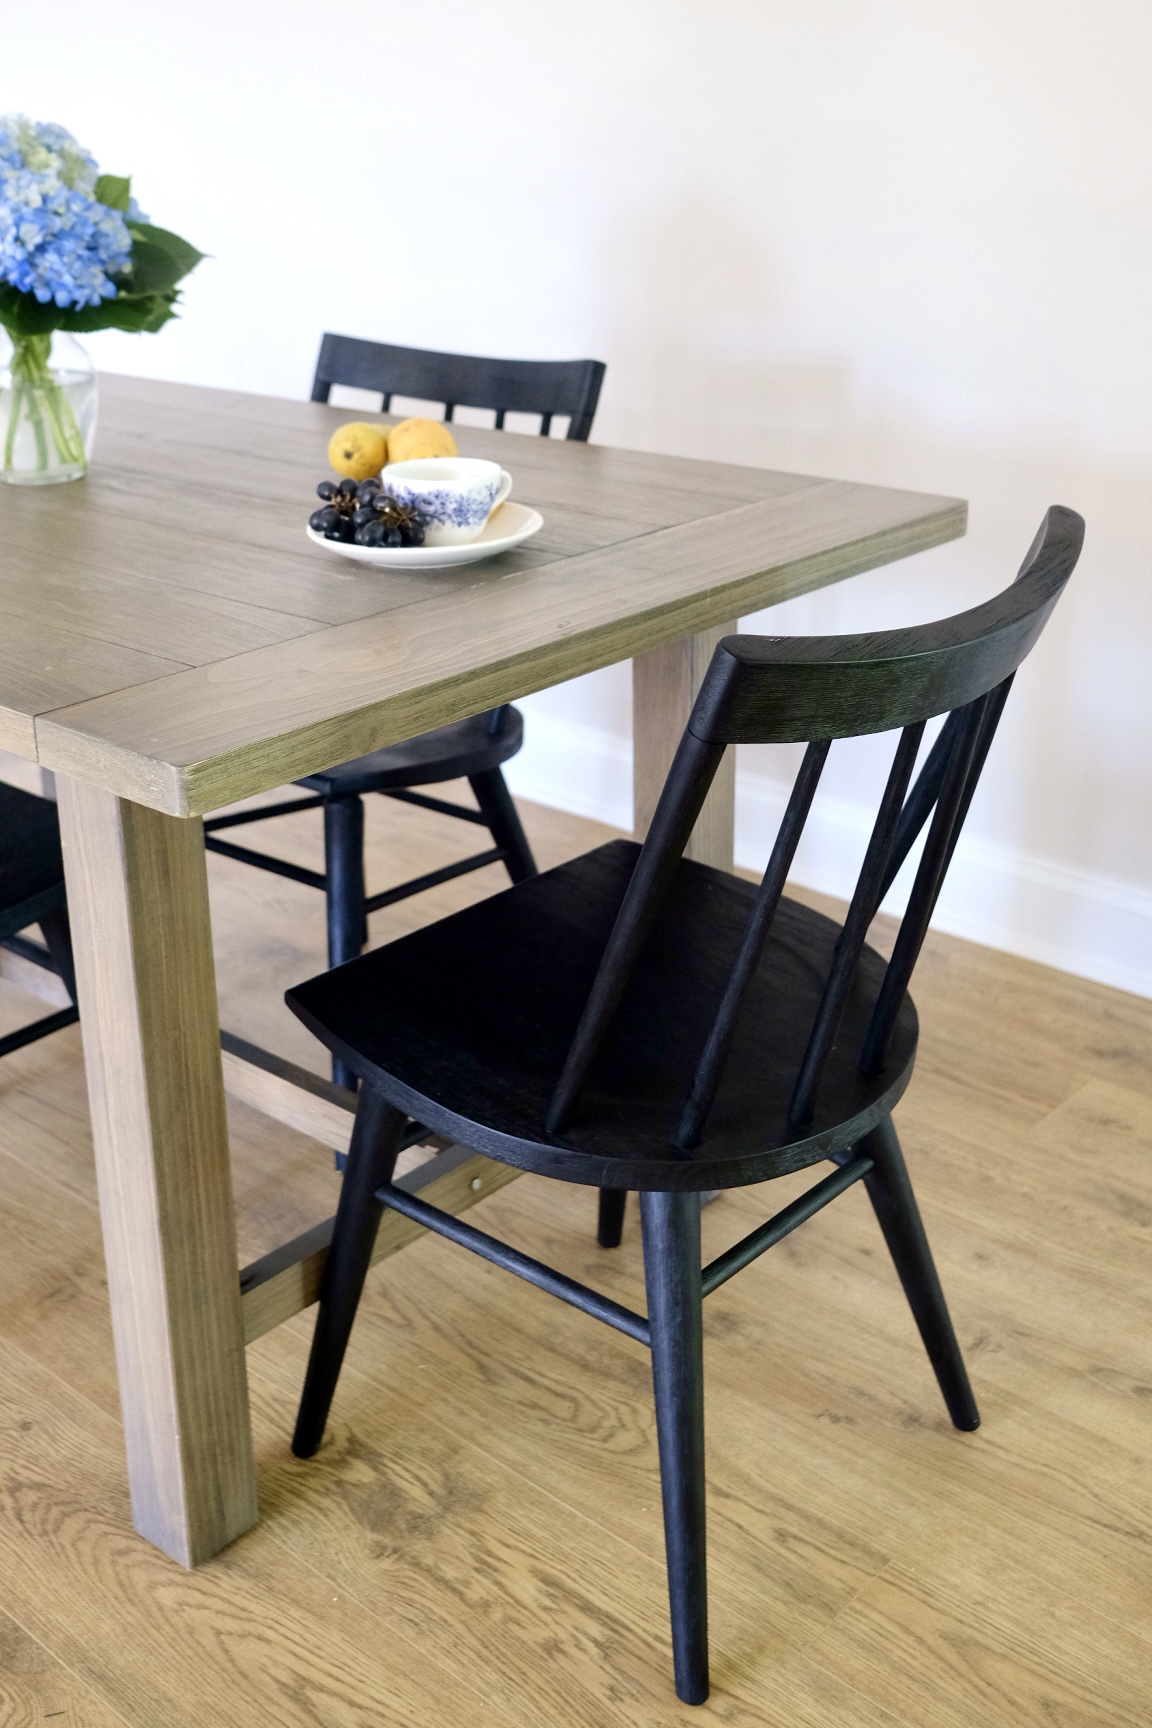 Lifestyle Blogger Chocolate and Lace shares her farmhouse style dining table and chairs